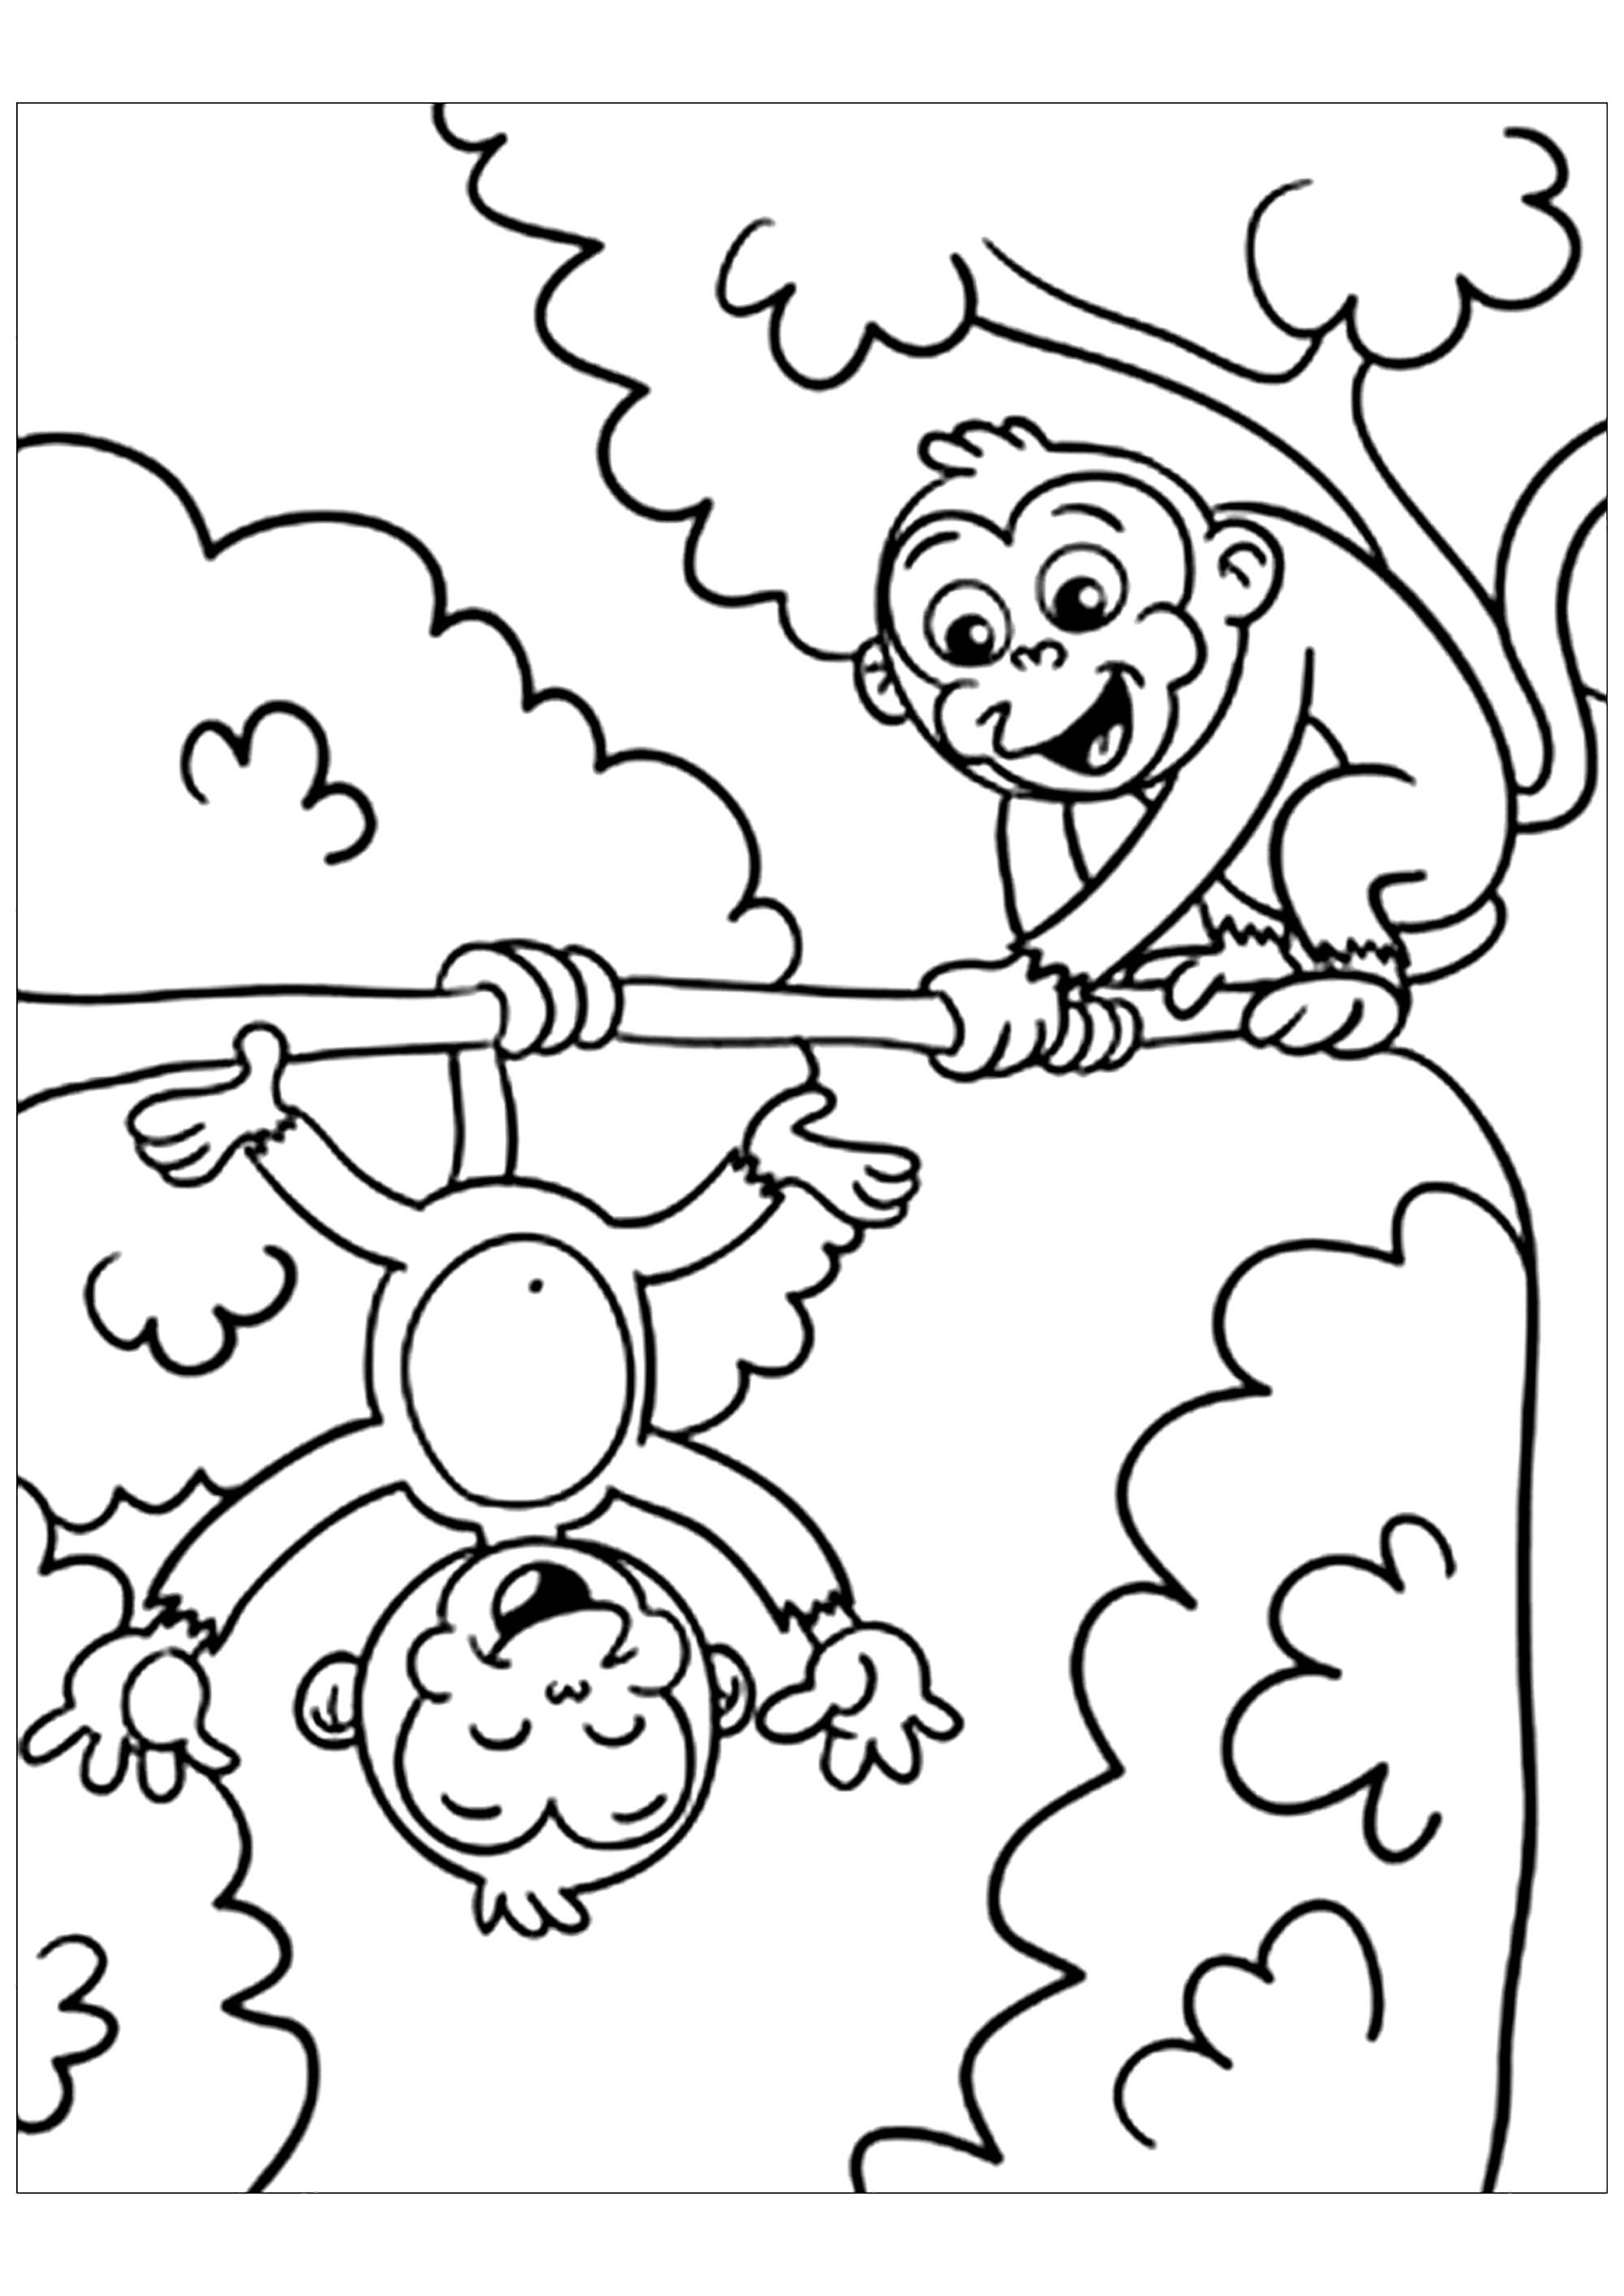 coloring pictures to color for kids zebra coloring pages free printable kids coloring pages color for pictures to kids coloring